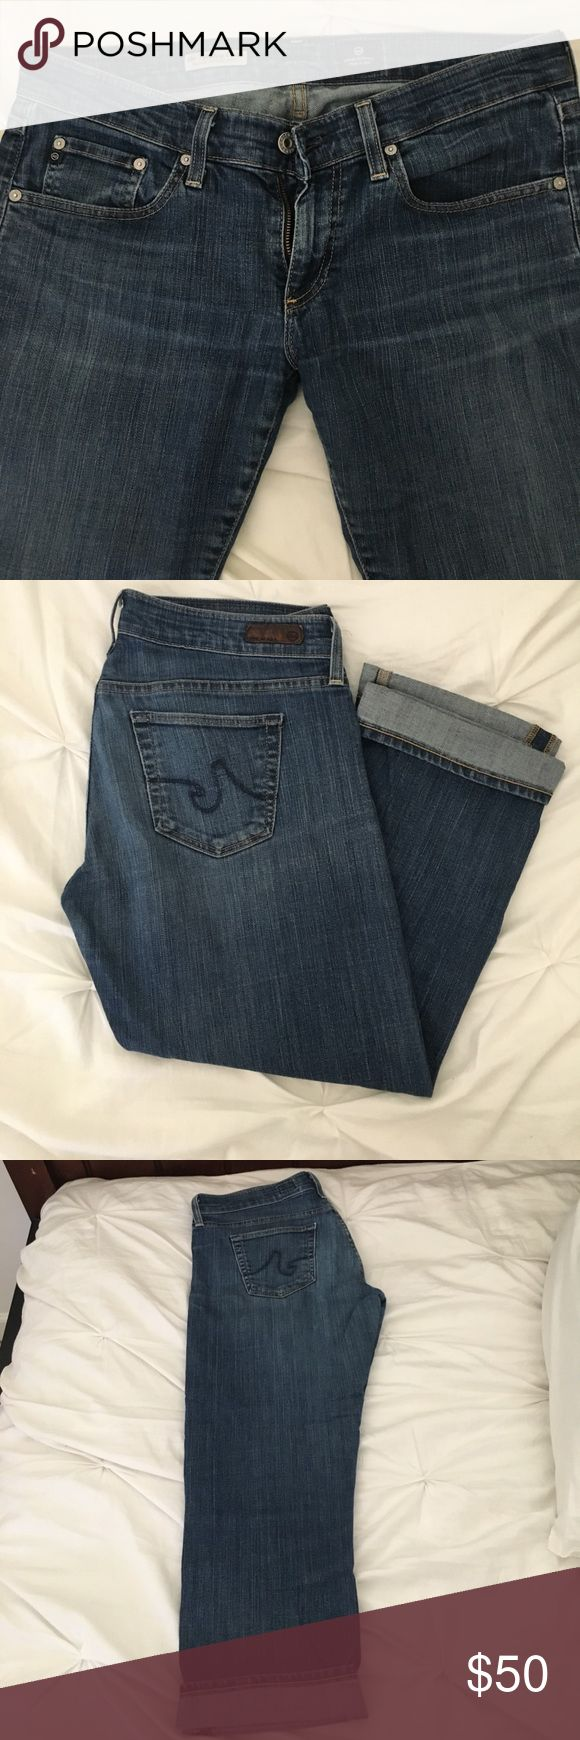 AG jeans Tomboy cropped great condition AG jeans Tomboy cropped great condition AG Adriano Goldschmied Jeans Ankle & Cropped